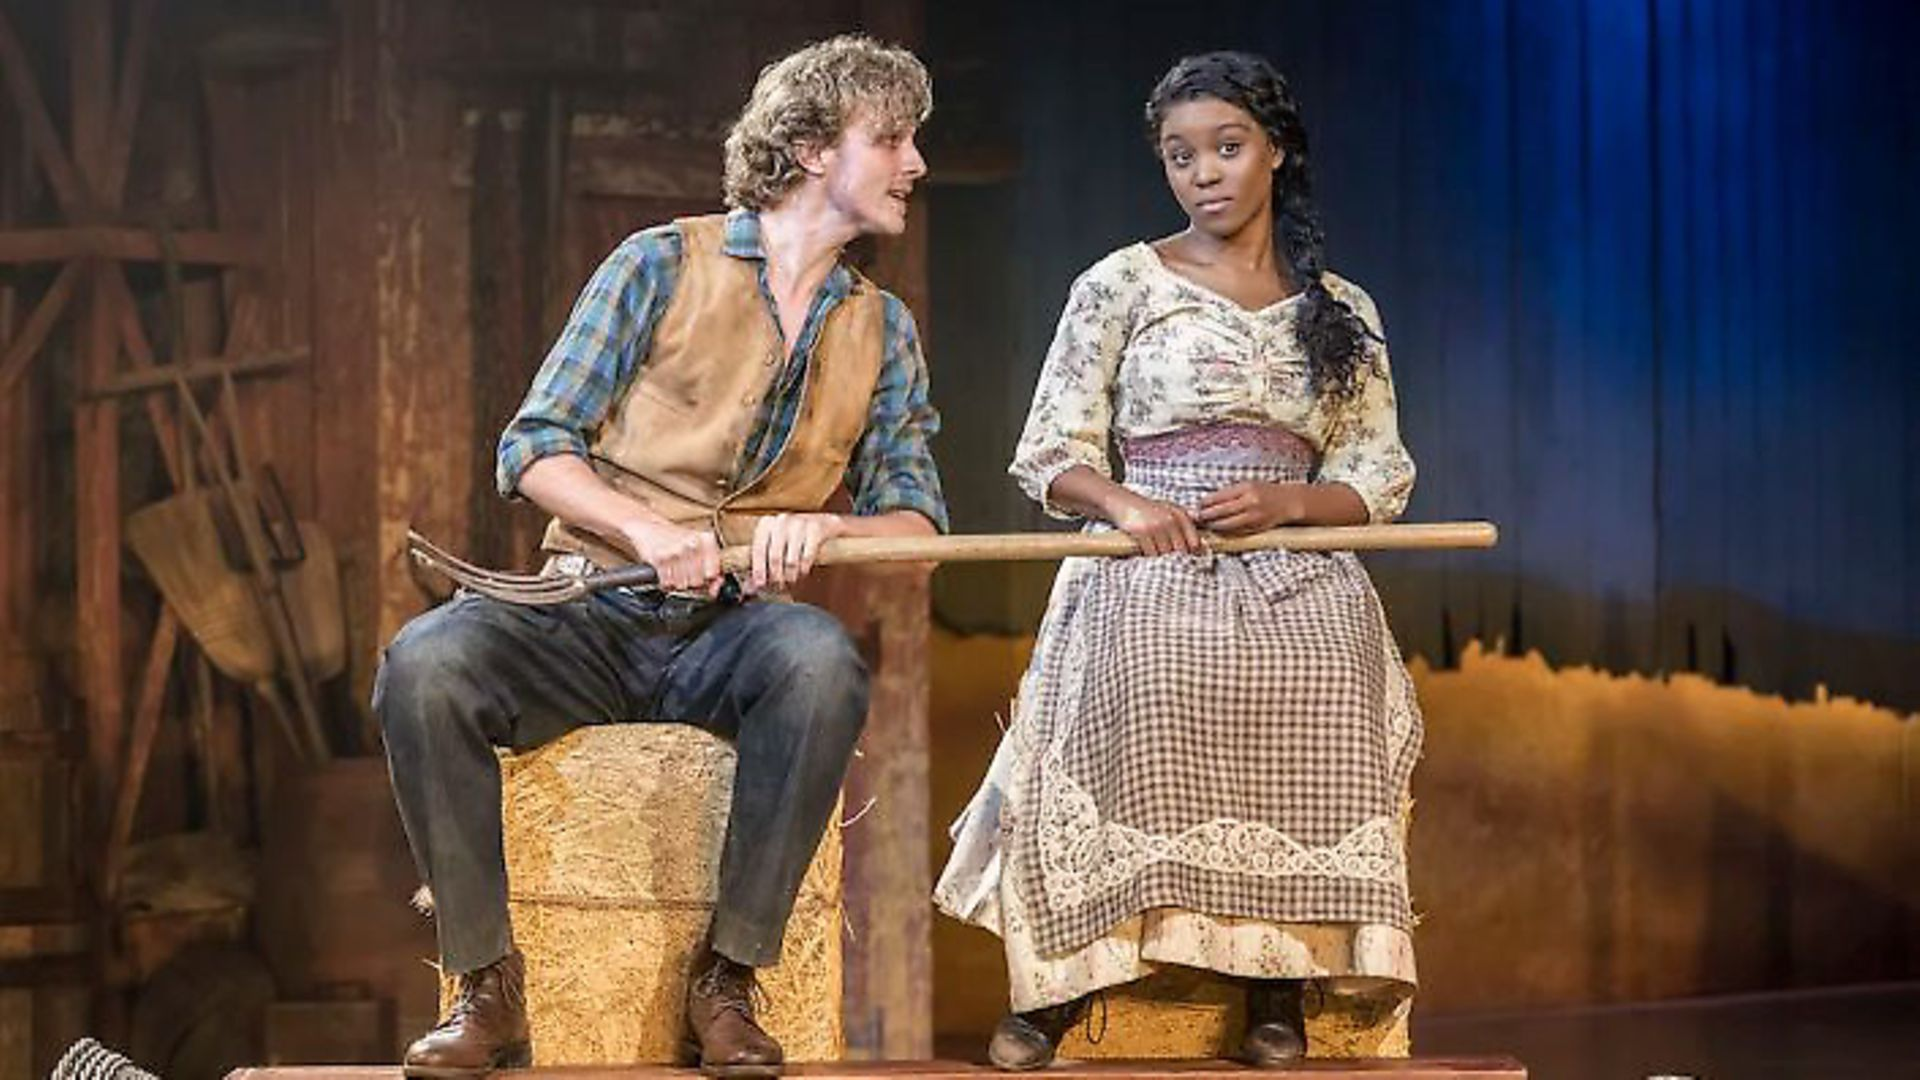 Hyoie O'Grady as Curly and Amara Okereke as Laurey in Oklahoma! at Chichester Festival Theatre. Picture: Johan Persson - Credit: Archant